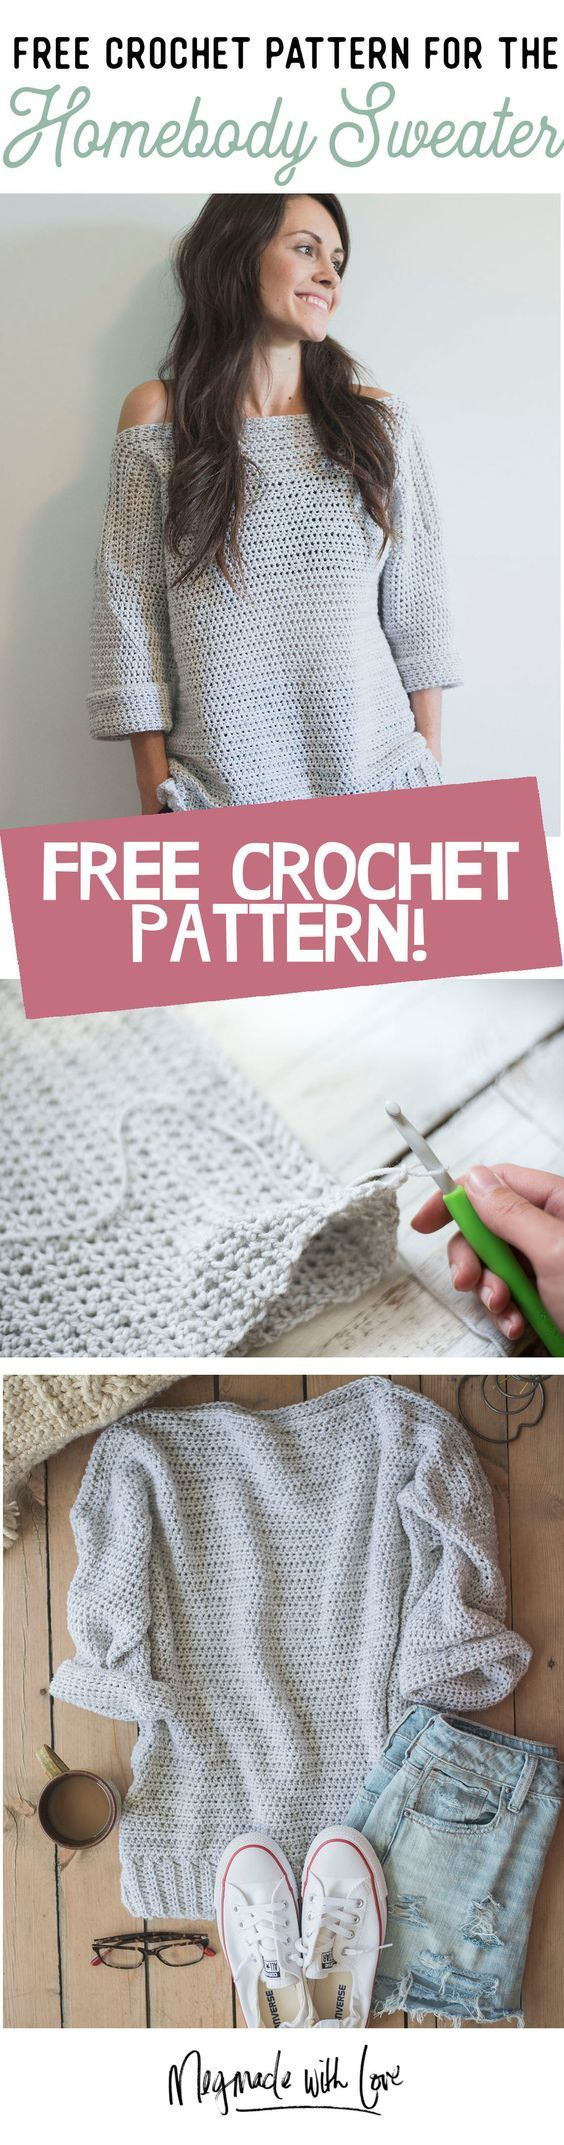 Free Crochet Pattern for The Homebody Sweater - Pullover Comfy Top - Megmade with Love